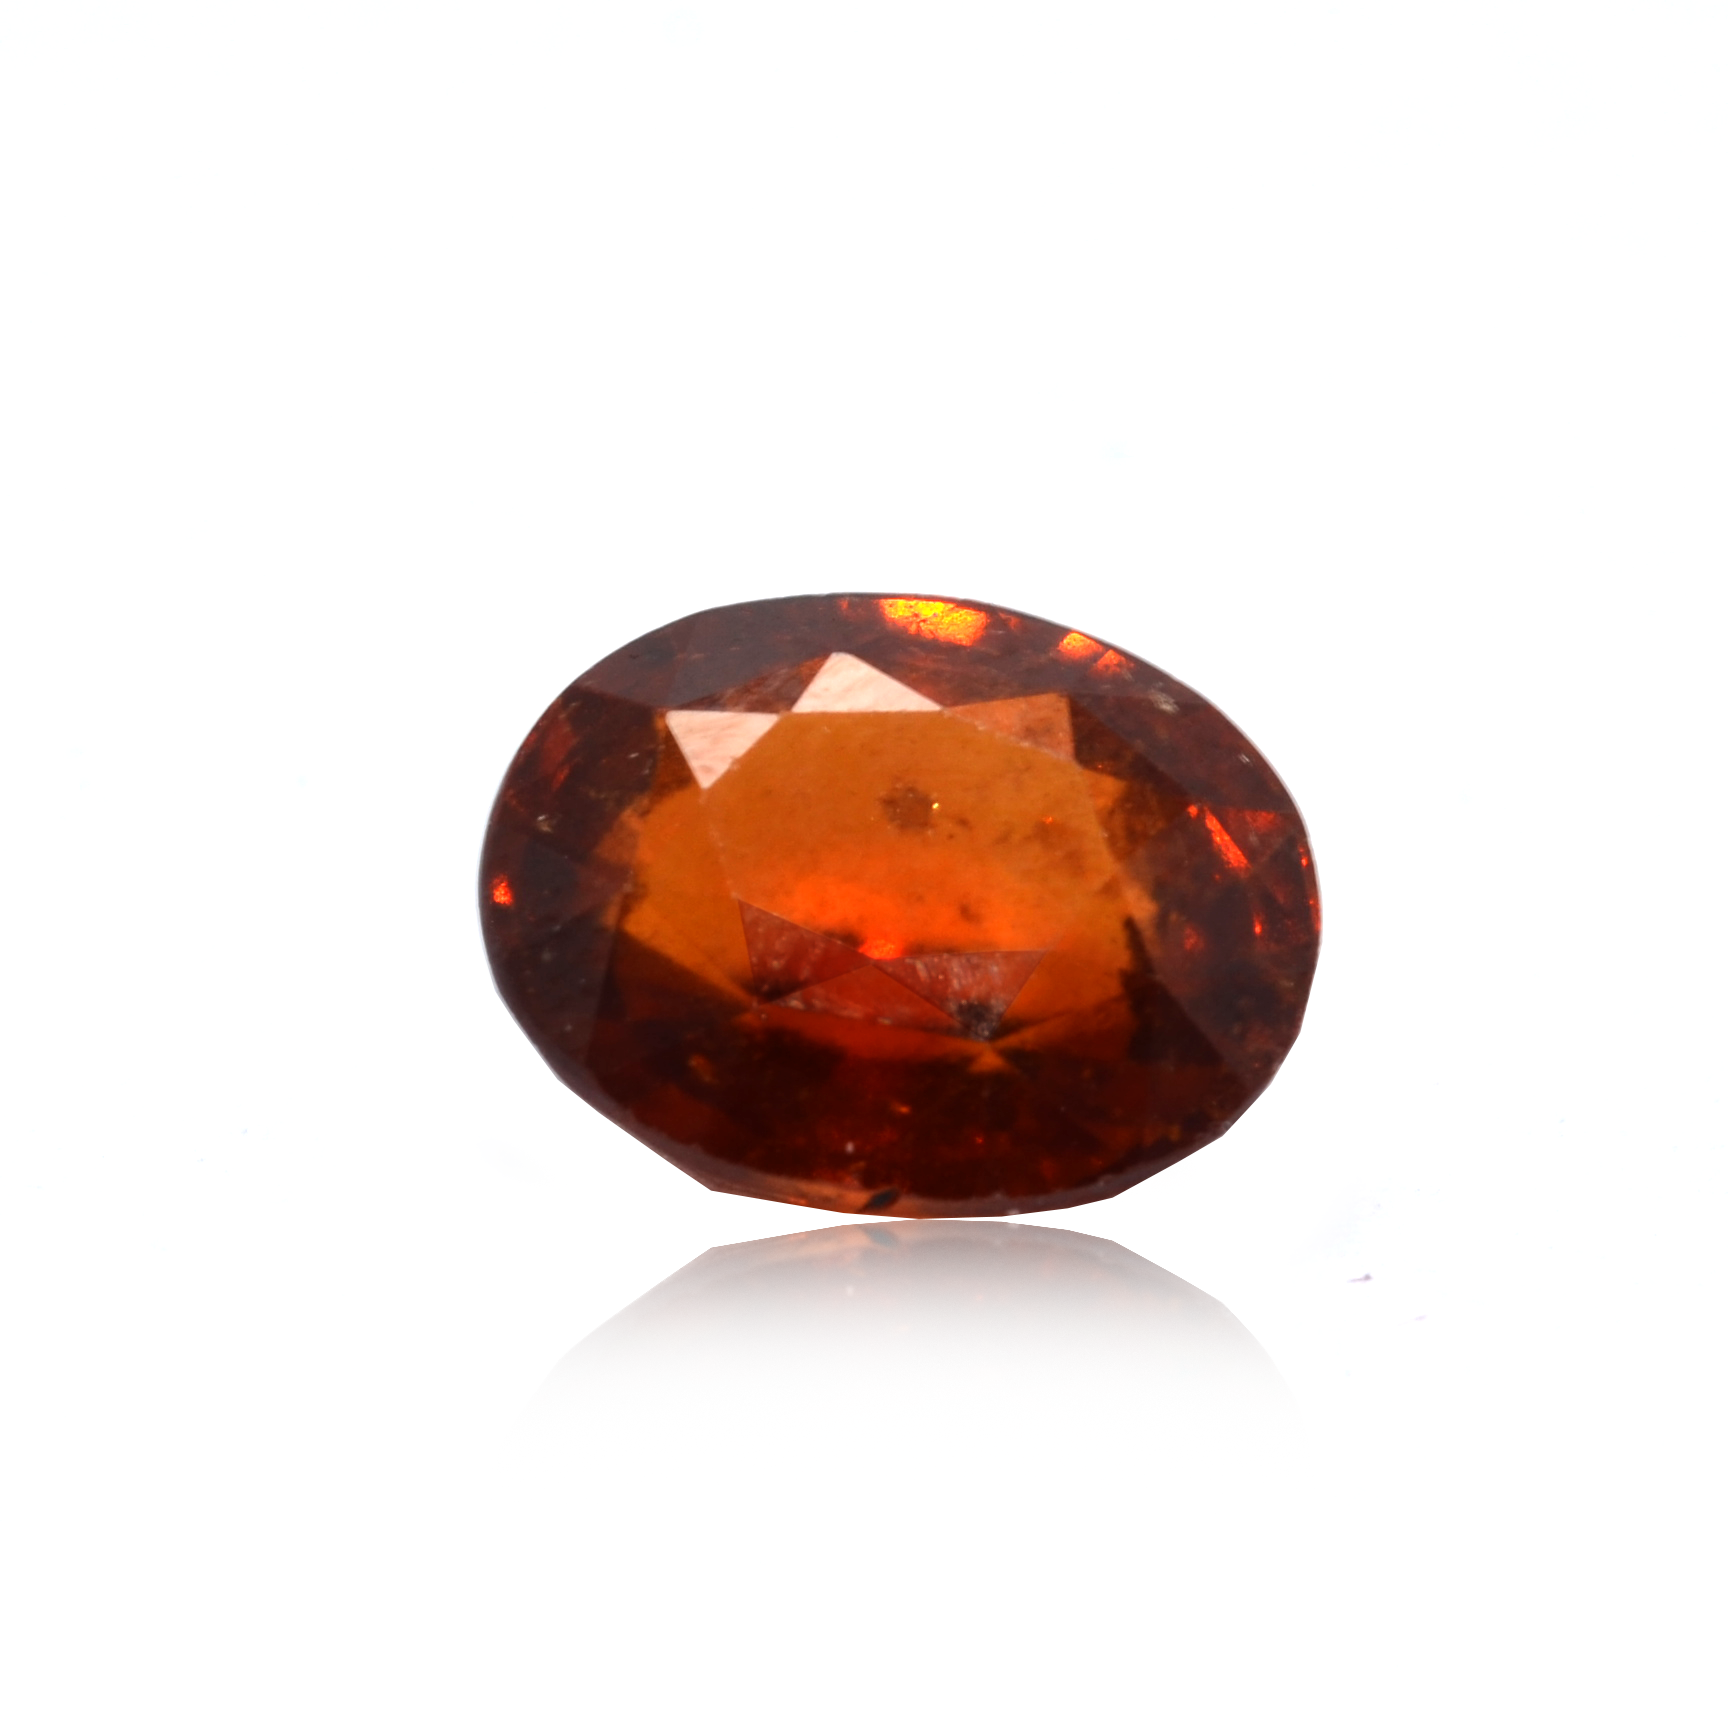 6.90 CARAT, OVAL MIXED CUT NATURAL HESSONITE GARNET